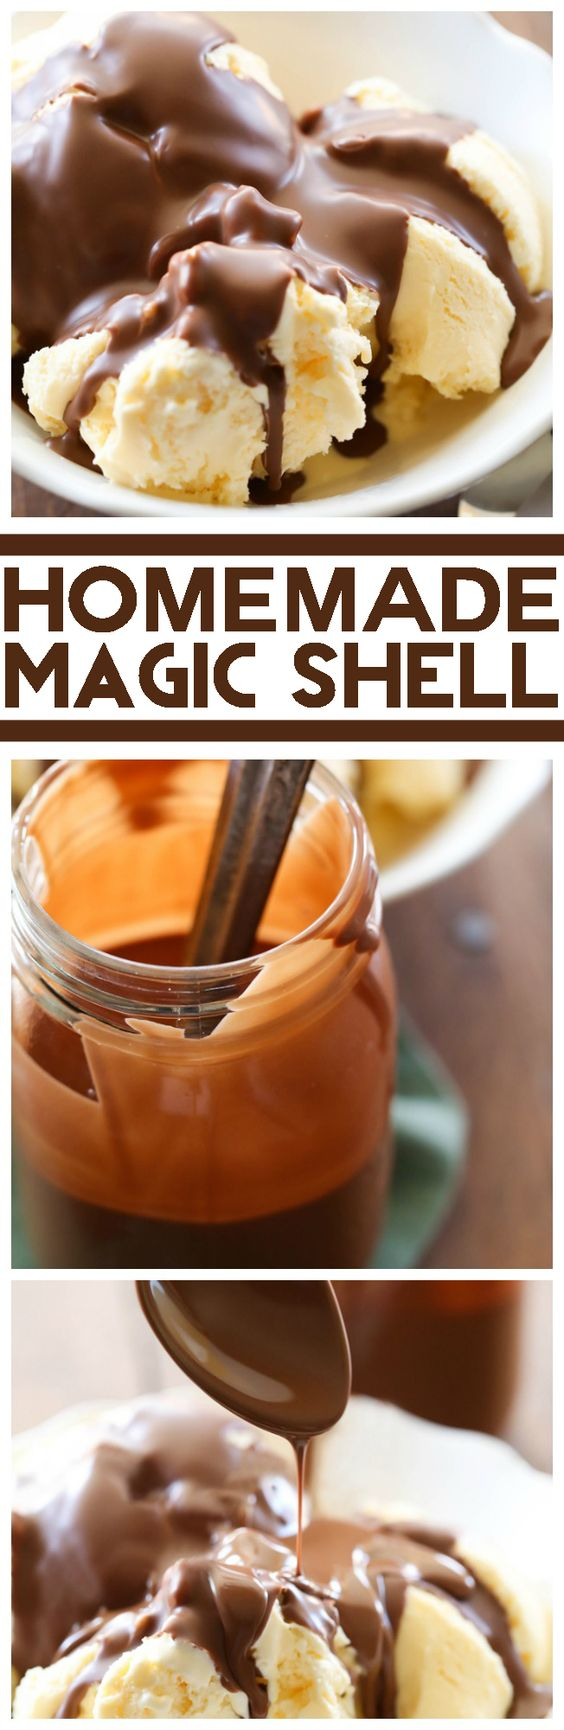 Homemade Magic Shell | Recipe | Homemade Magic Shell, Best Ice Cream ...